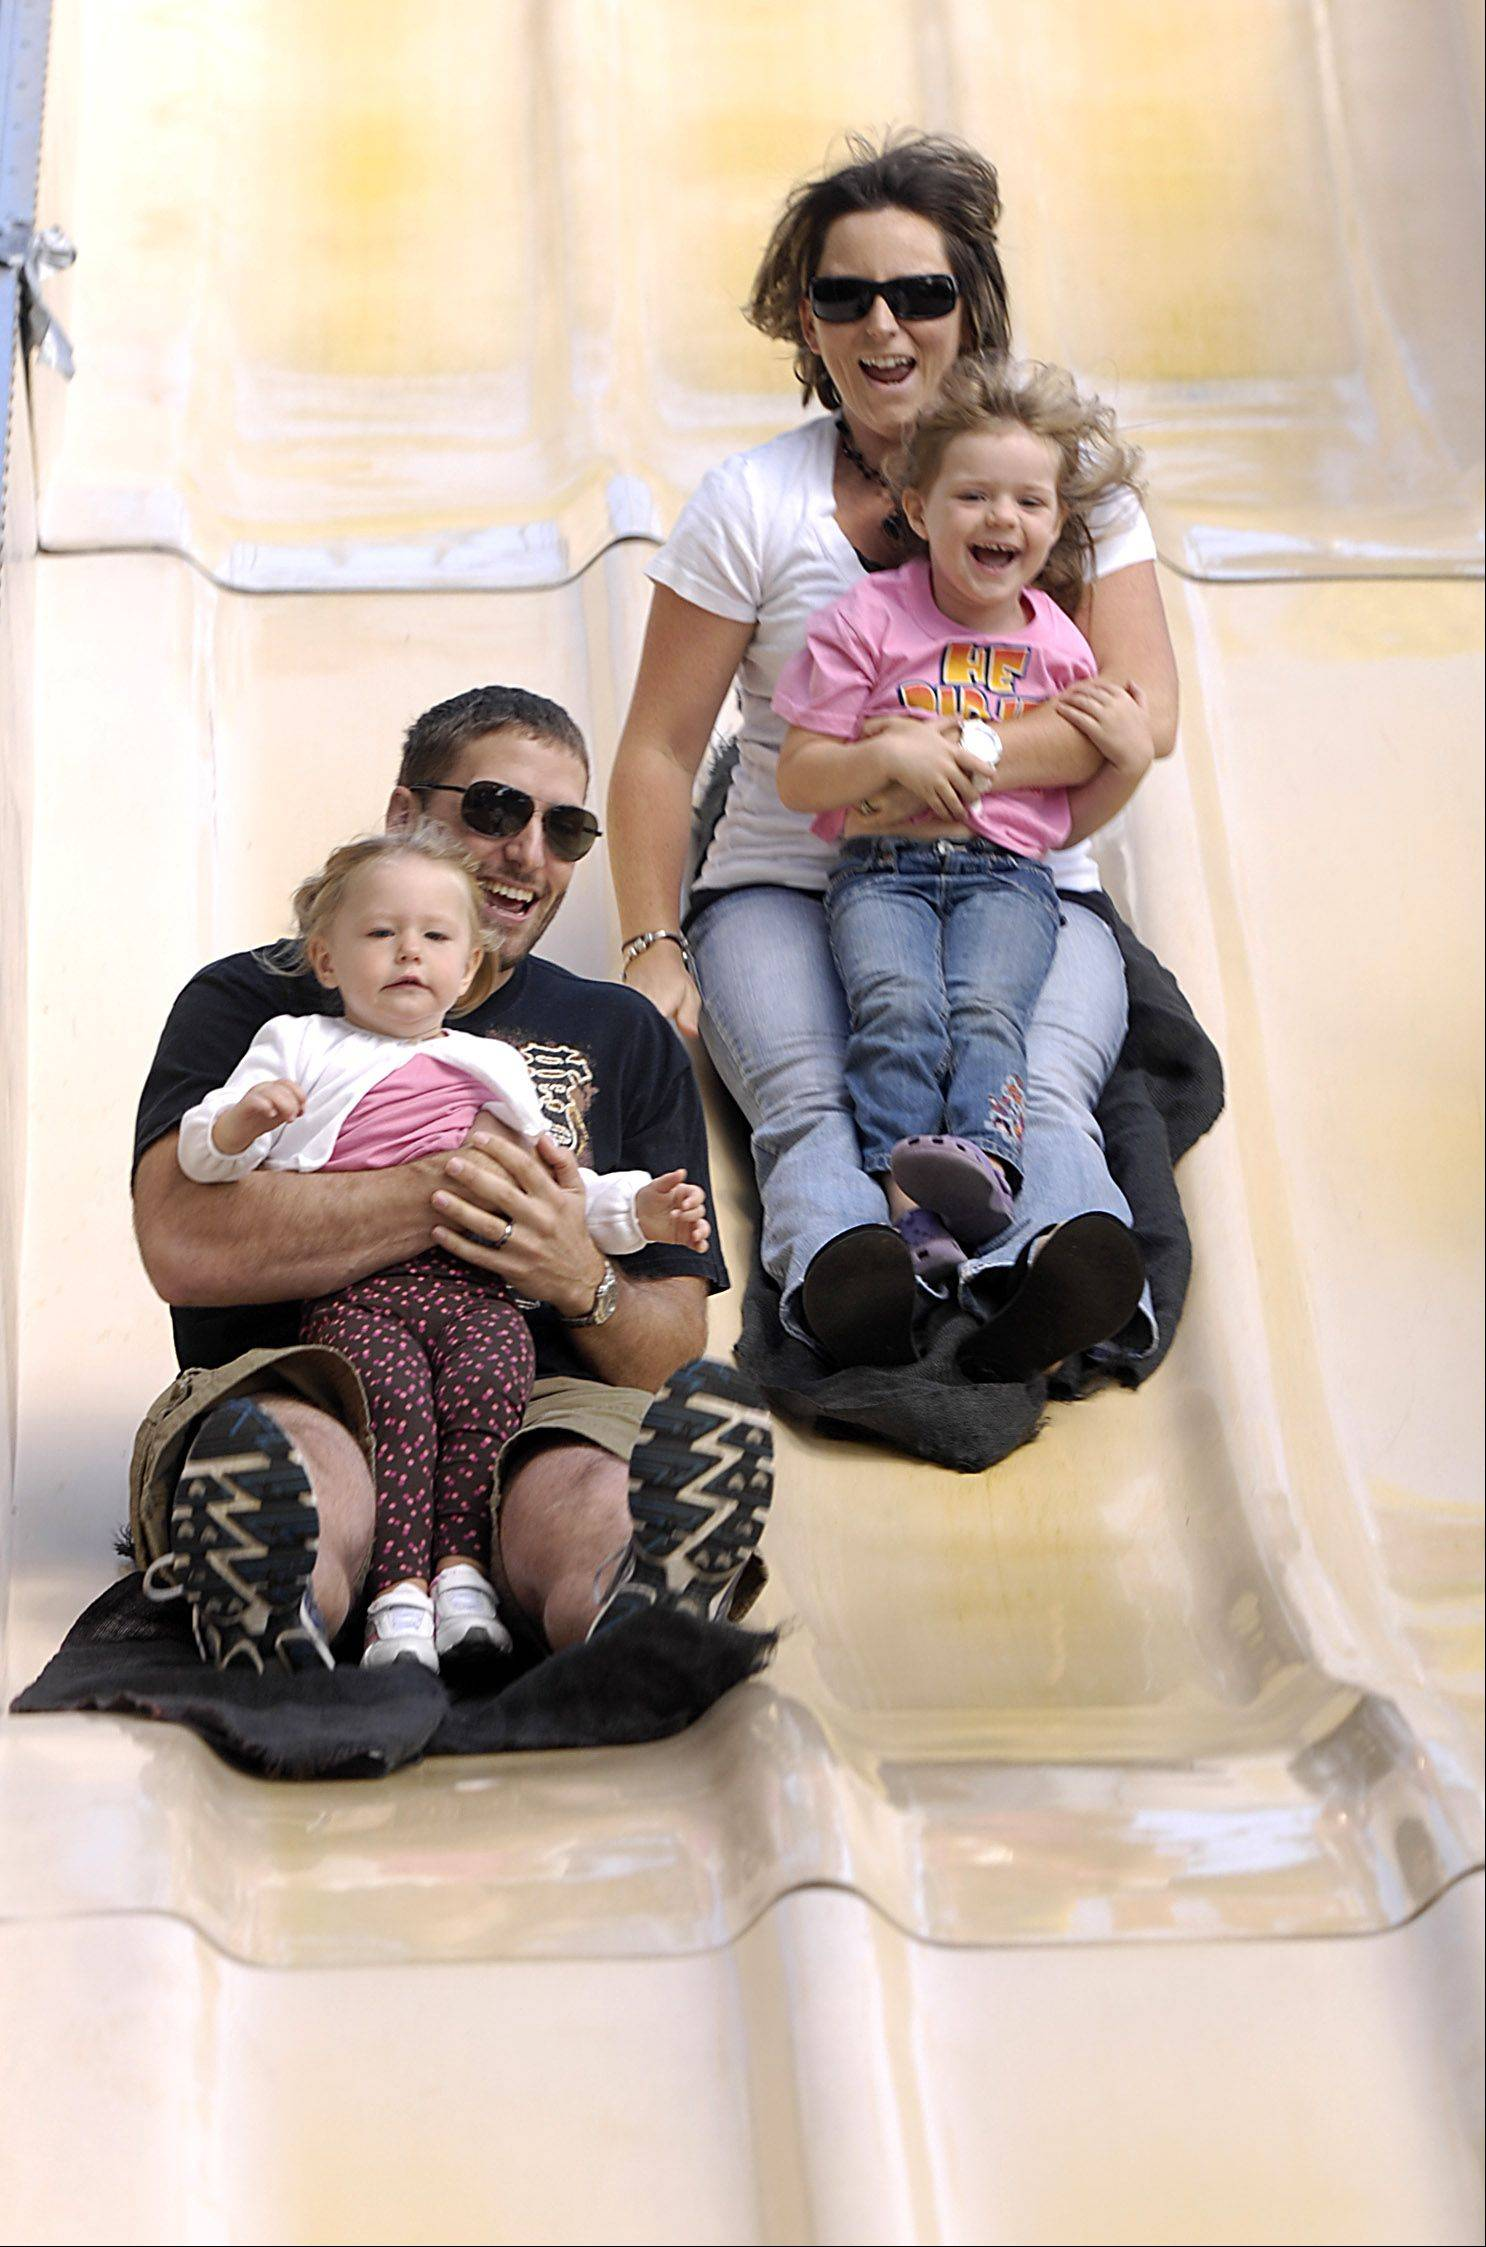 Naperville residents Scott Hecht, his daughter Adalyn, 2, his wife Meagan Hecht, and their niece Ryann Furlow, 4, enjoy a trip down the Fun Slide at the Last Fling carnival in Naperville.